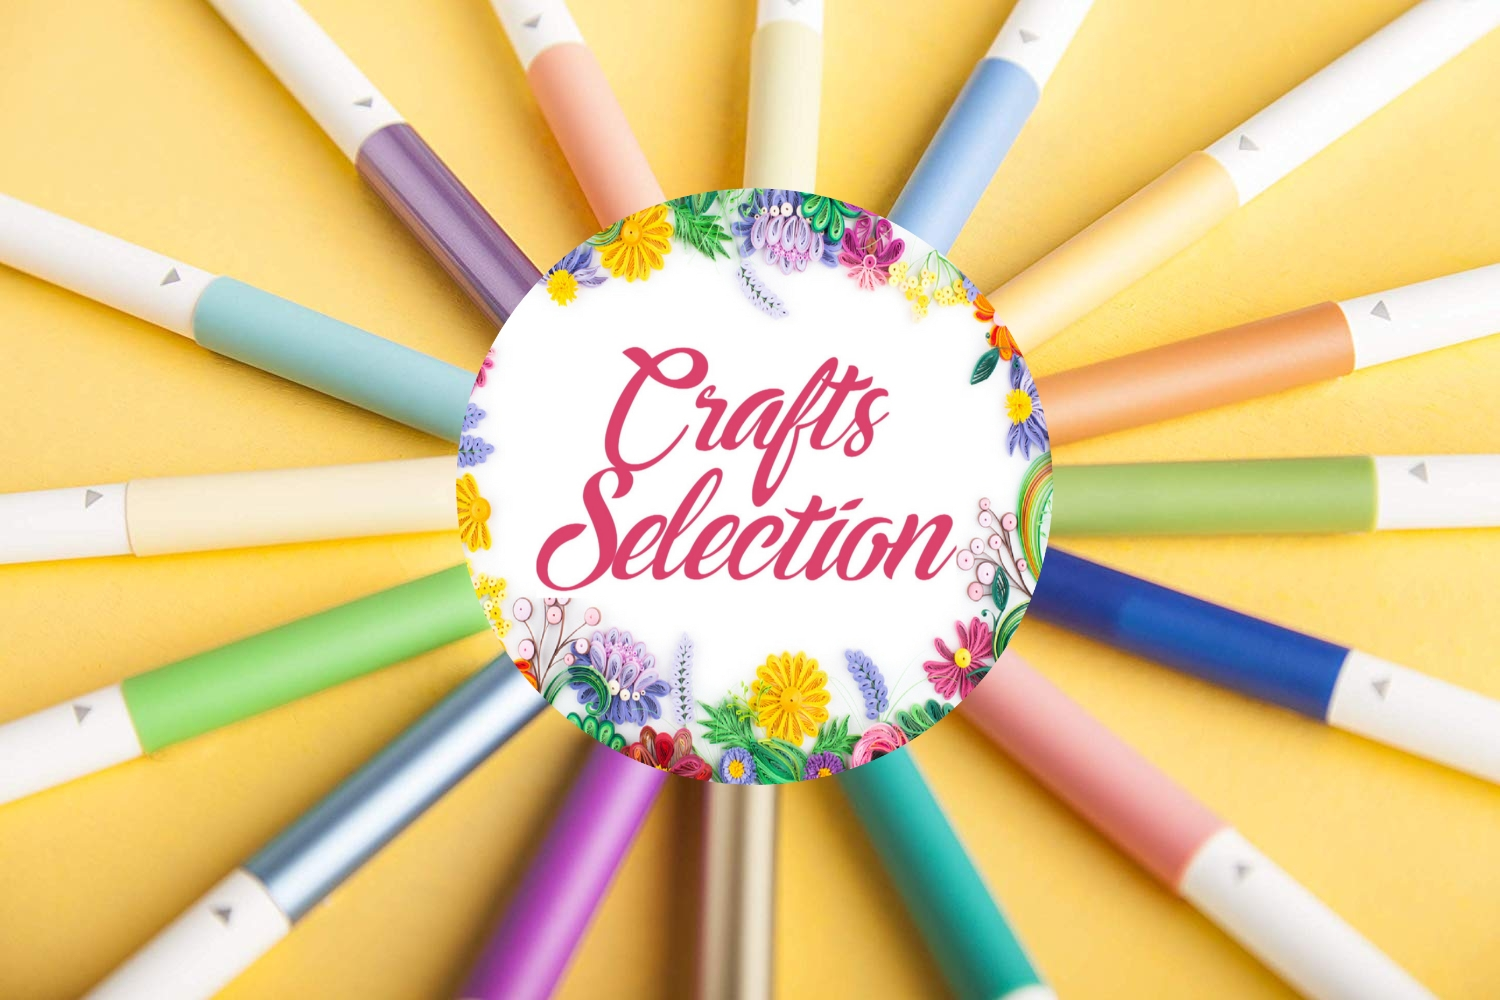 Crafts Selection - Best Crafts Product (@craftsselection) Cover Image